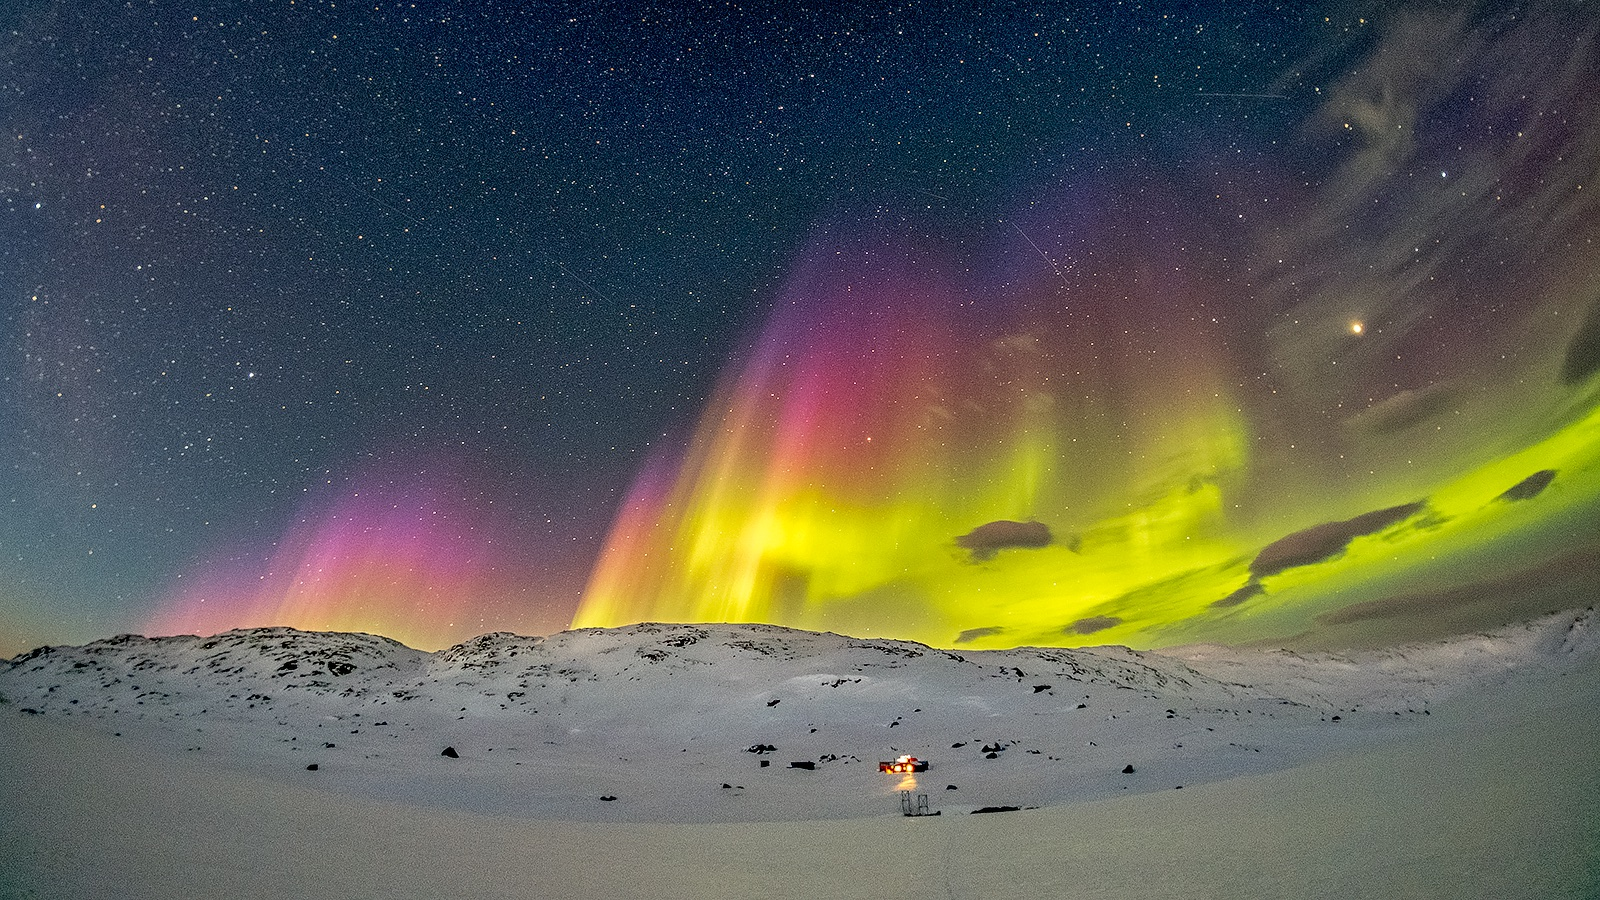 Northern lights dancing over the mountains in Swedish Lapland. Photo: David Björkén